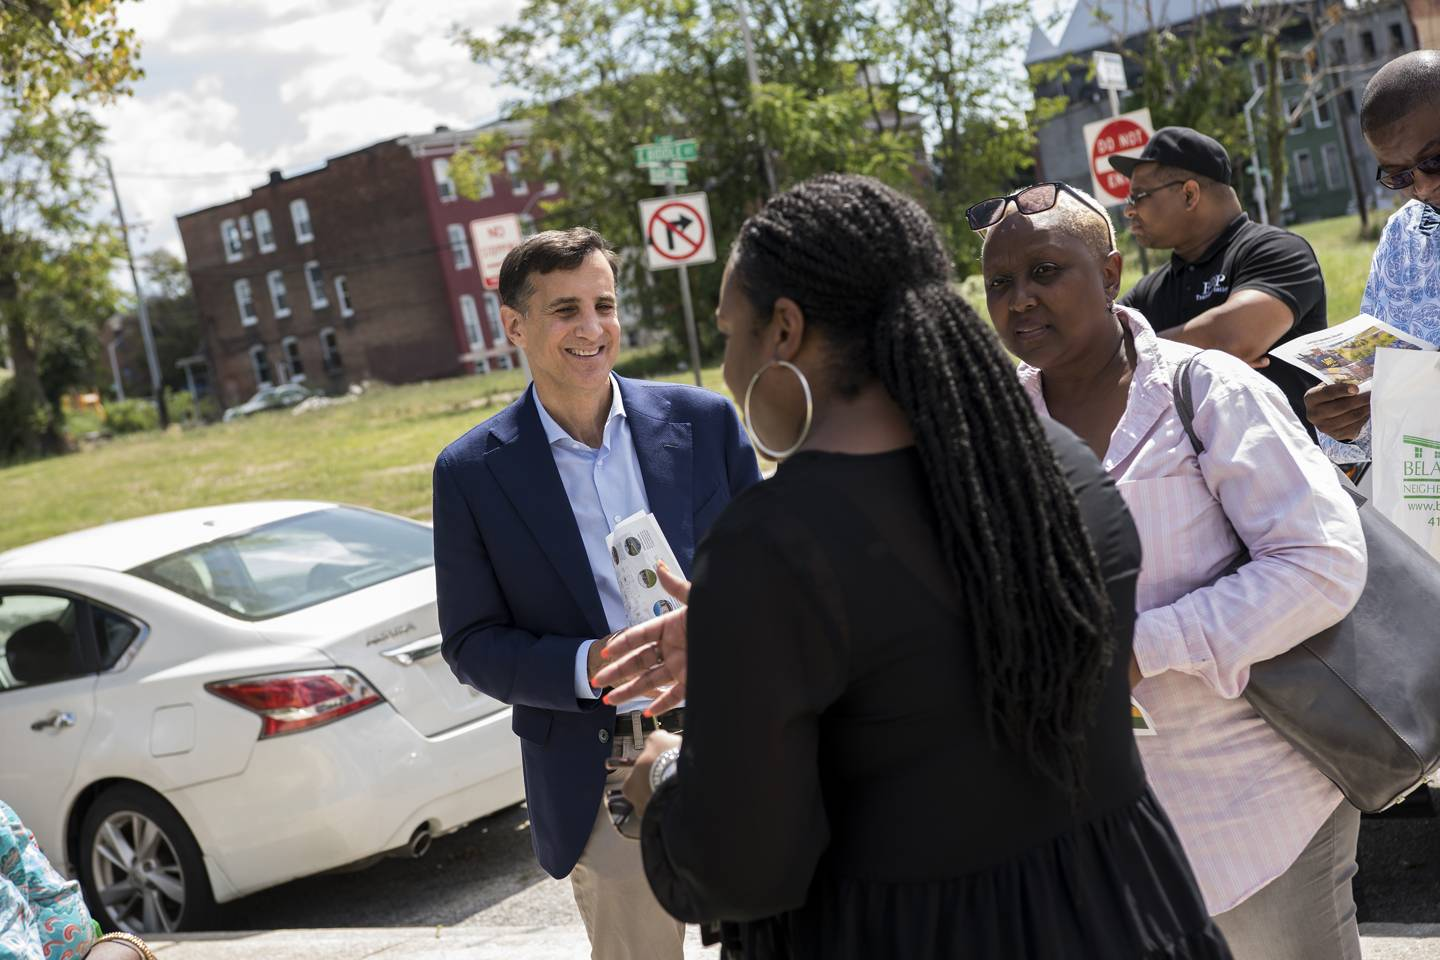 Event attendees tour the Johnston Square neighborhood